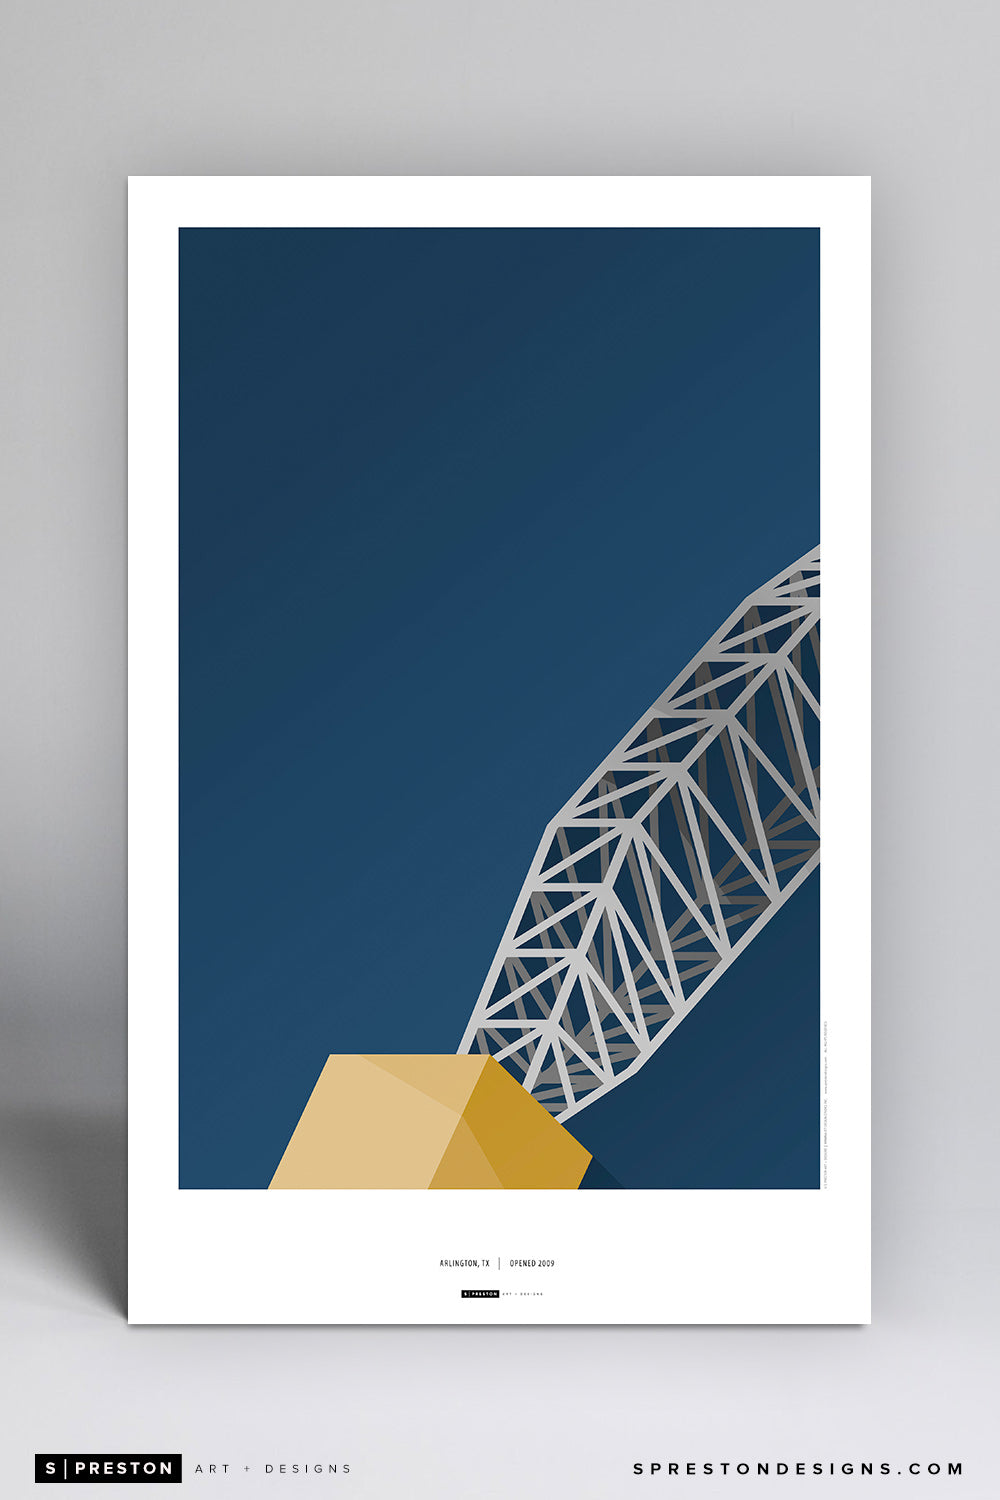 Minimalist AT&T Stadium (anchor) Art Poster Art Poster - Dallas Cowboys - S. Preston Art + Designs